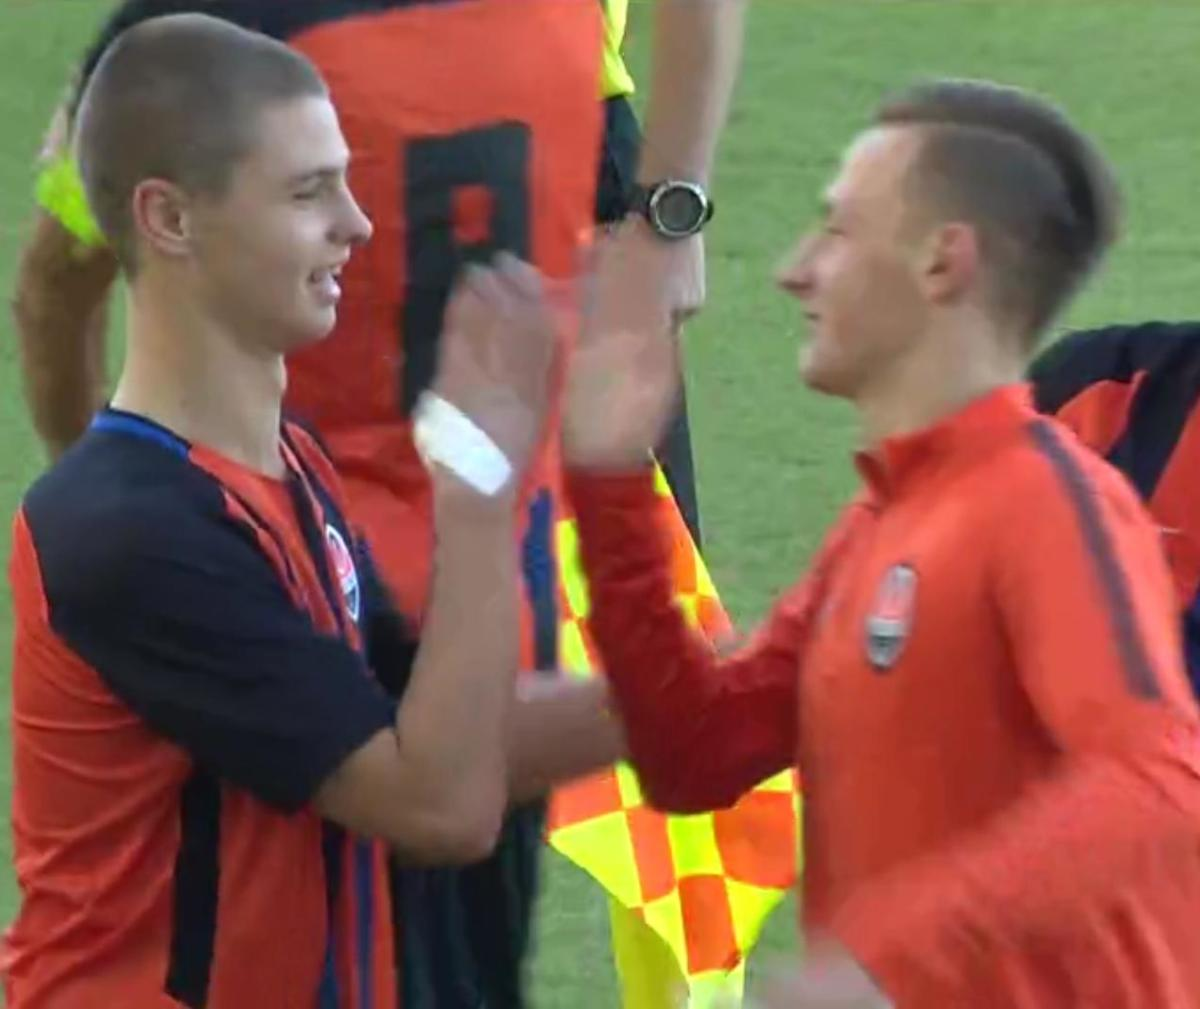 Youth League, Shakhtar vince 2-1: decisiva la sfida al Feyenoord